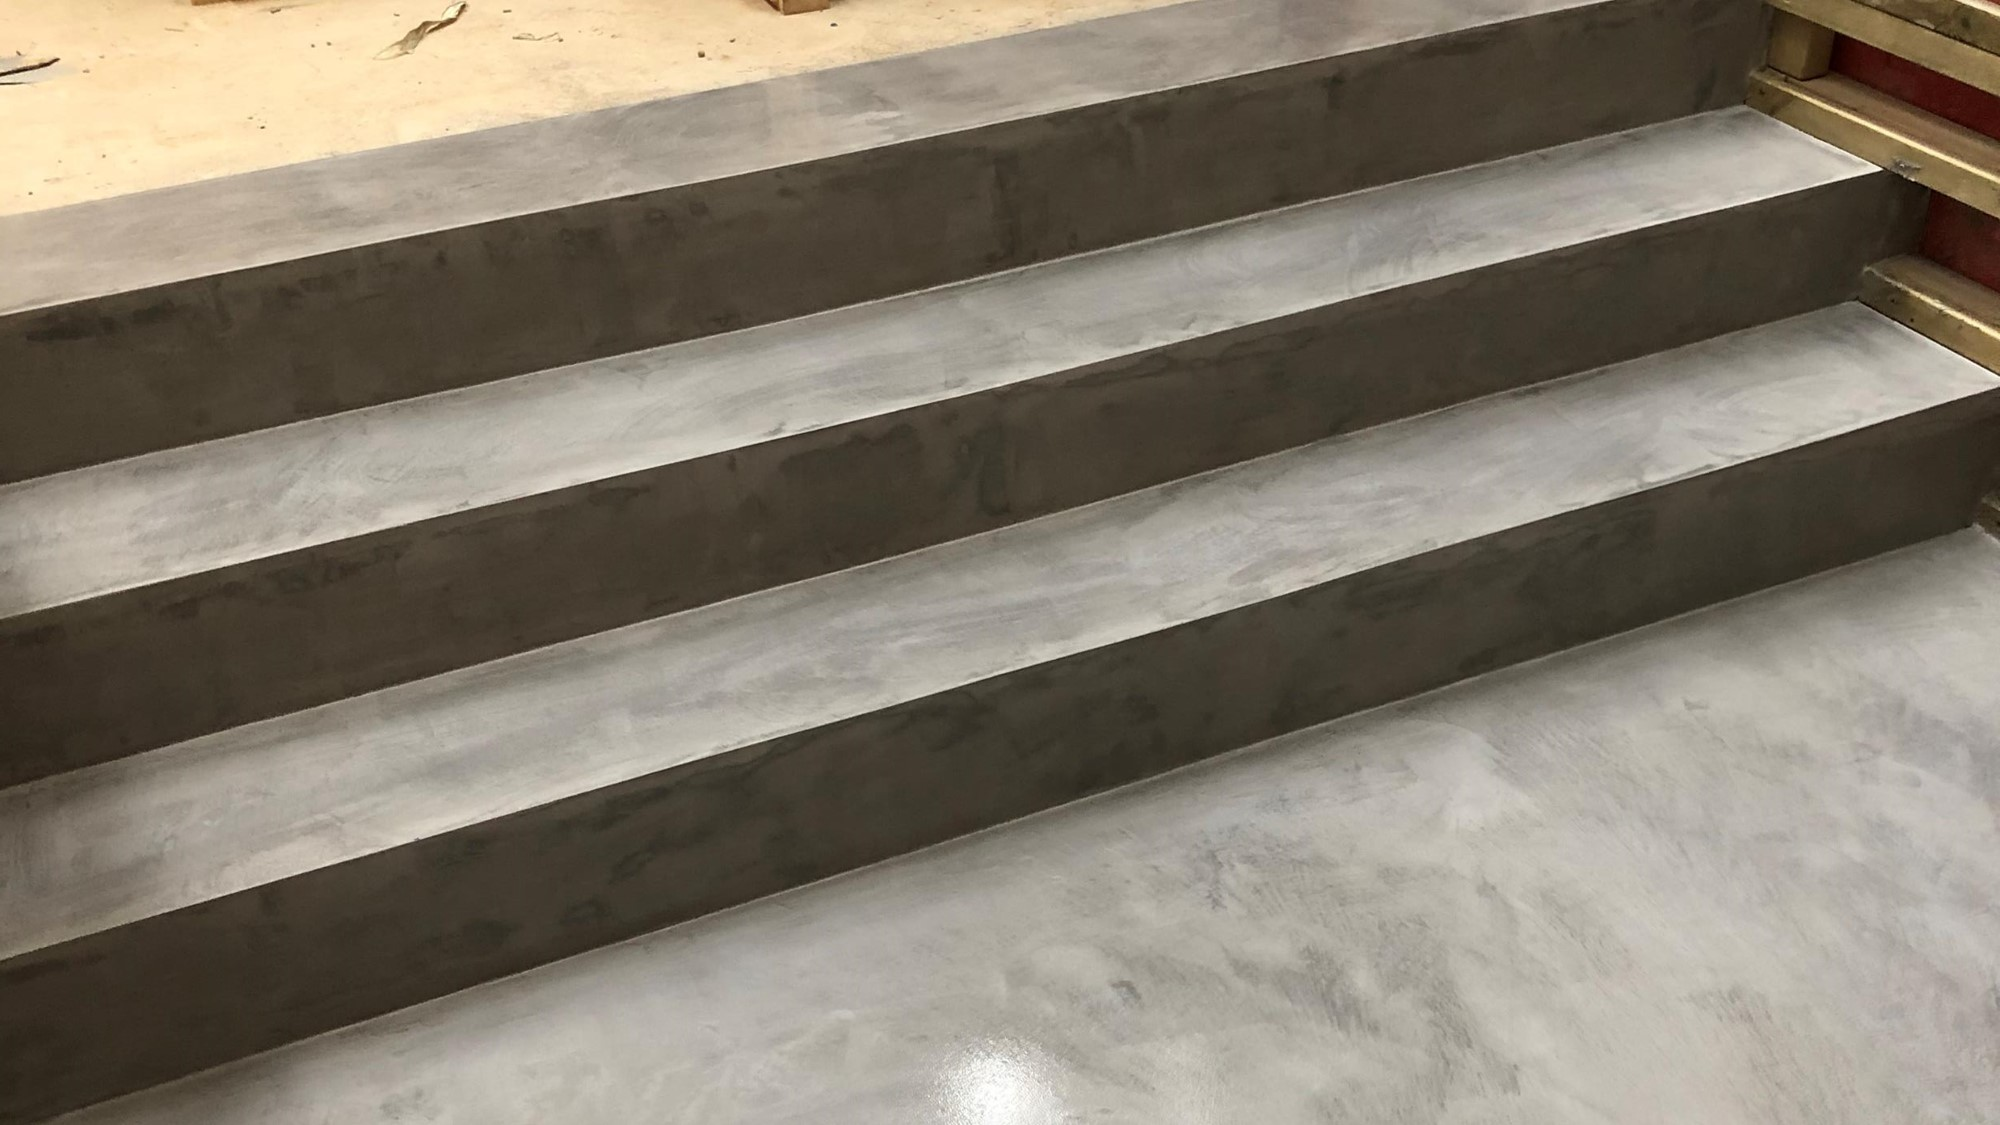 Ideal work microtopping microcement stairs East Sussex by Polished Concrete Specialists in East Sussex